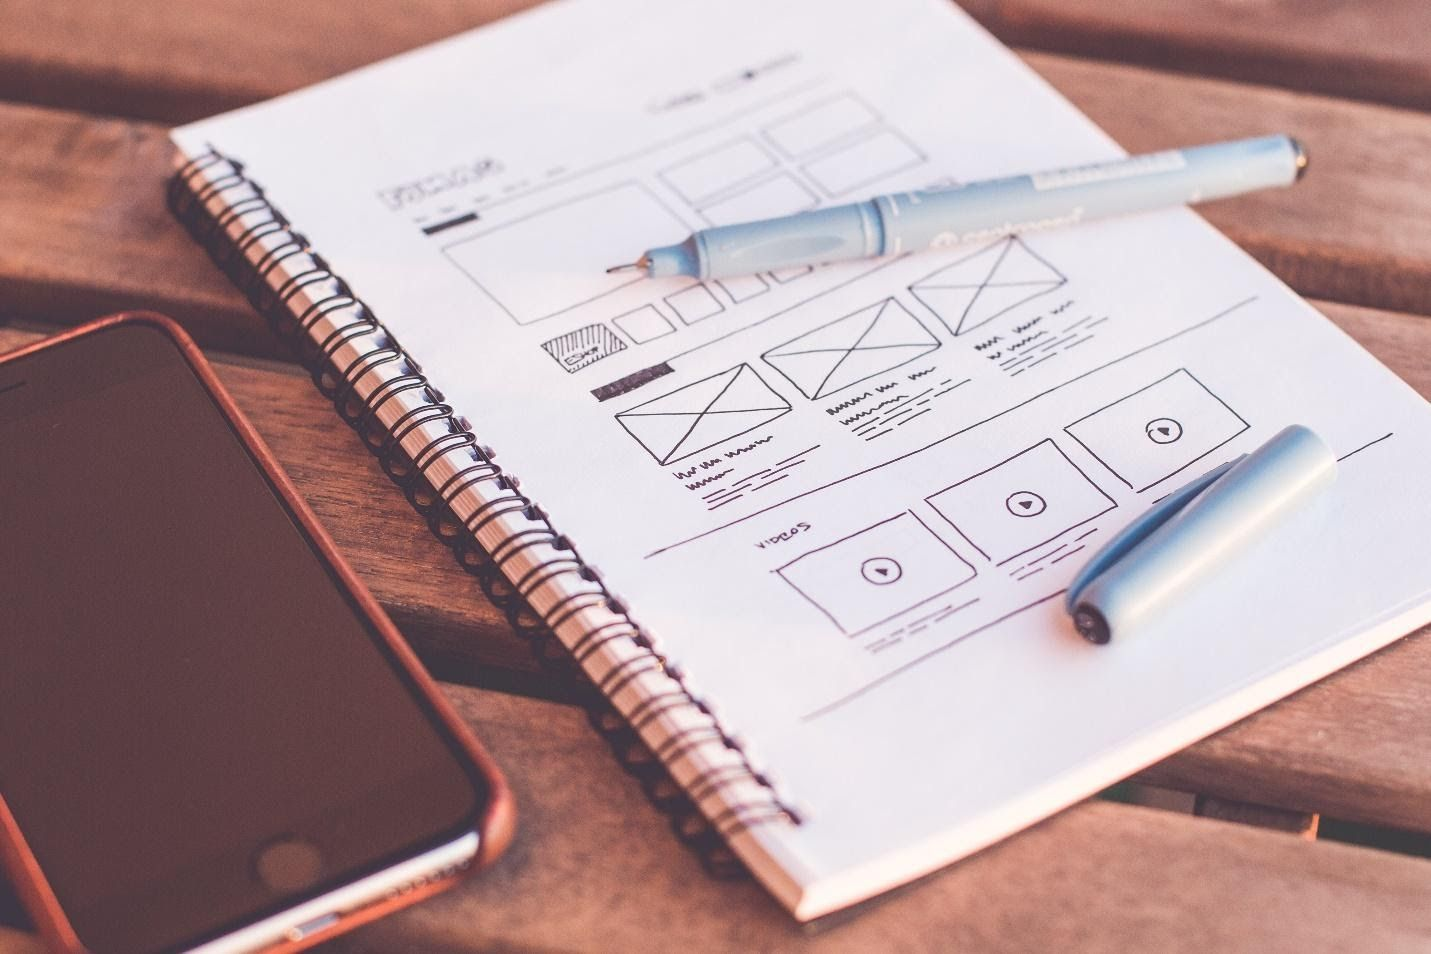 design pattern and interaction wireframe